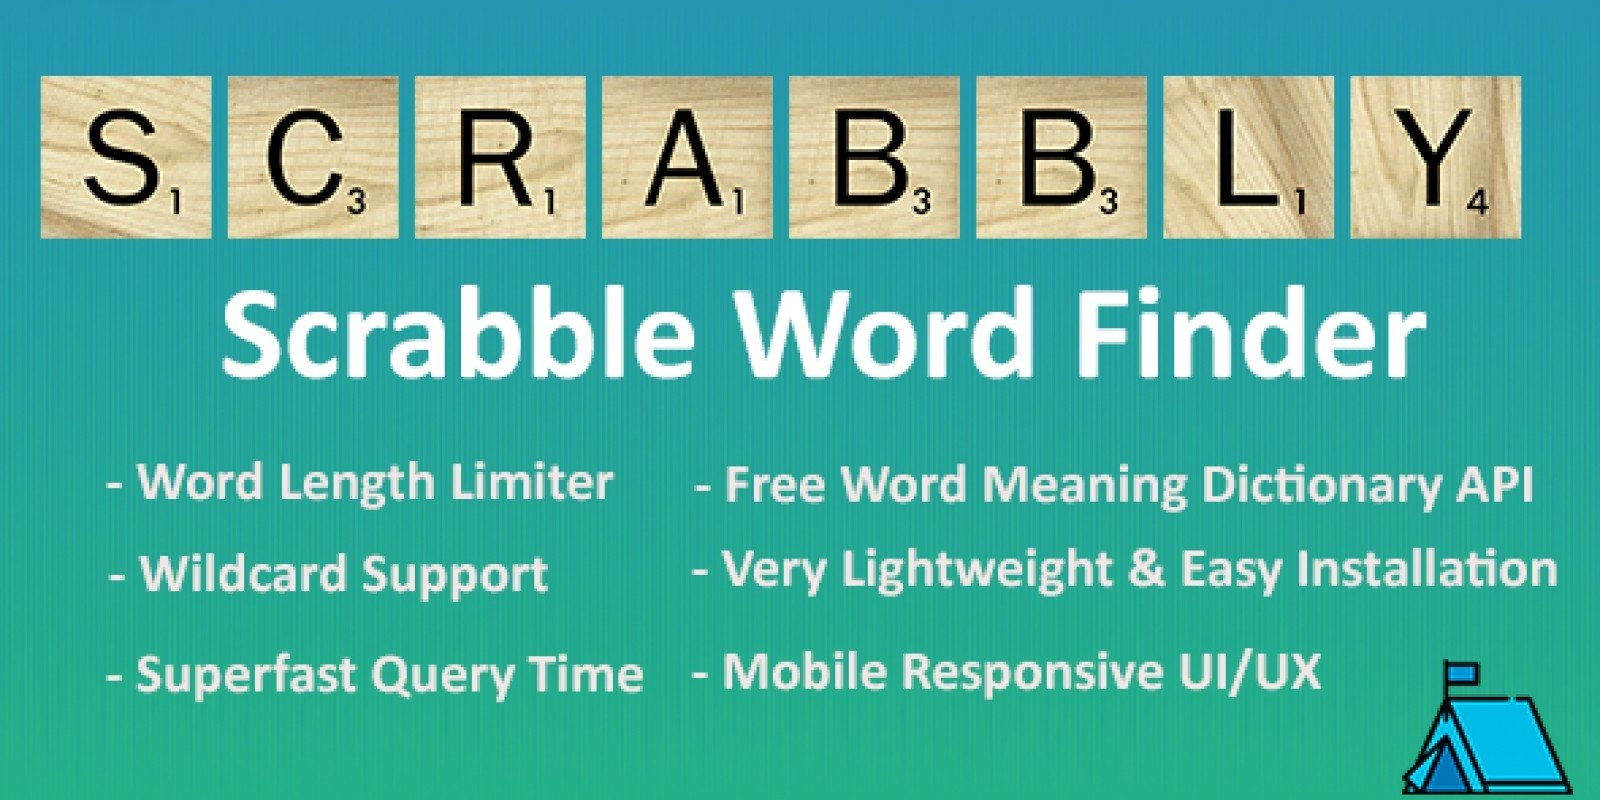 Scrabbly - Scrabble Word Finder Tool